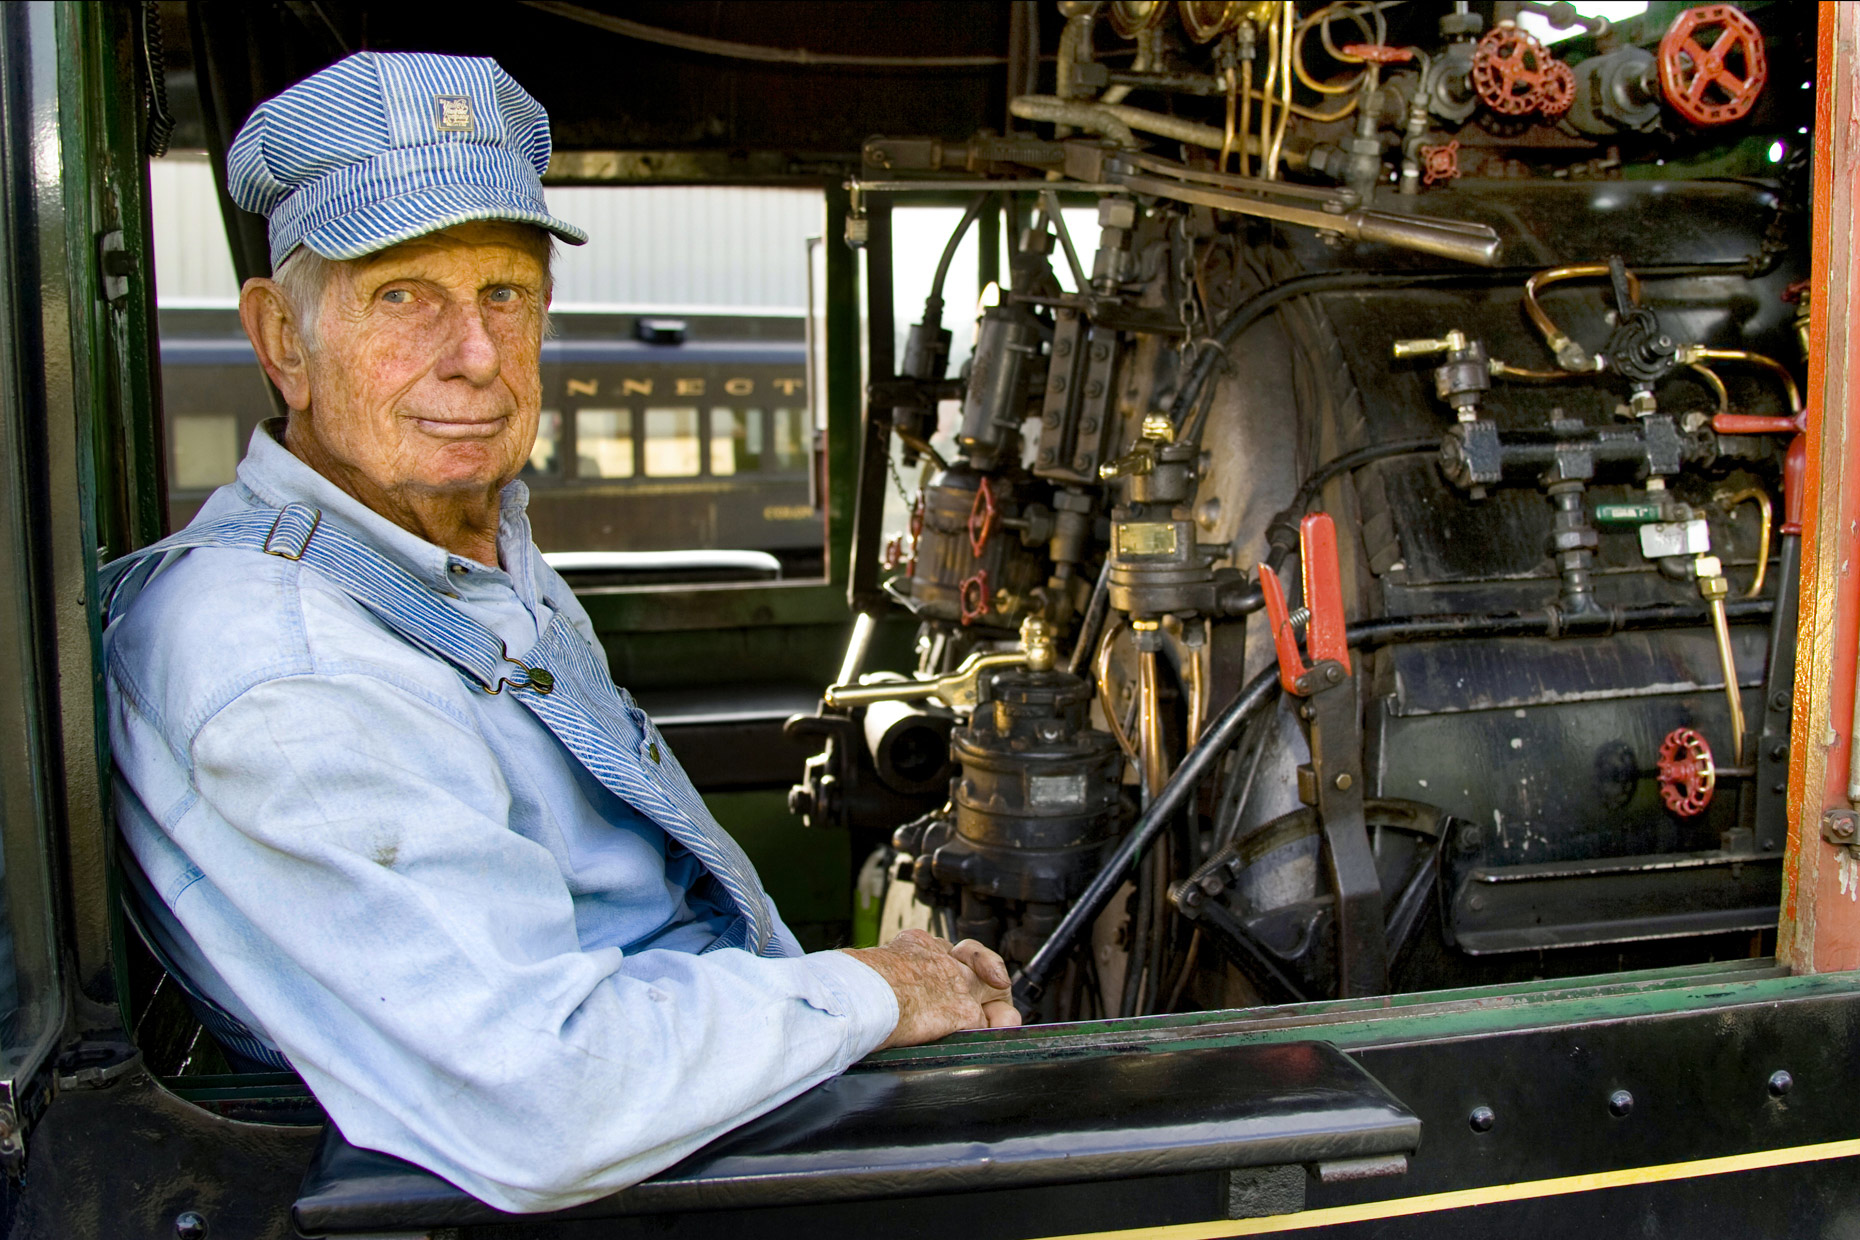 Pete-Fredrickson-Locomotive-Engineer-Essex-Steam-Train-Caryn-B-Davis